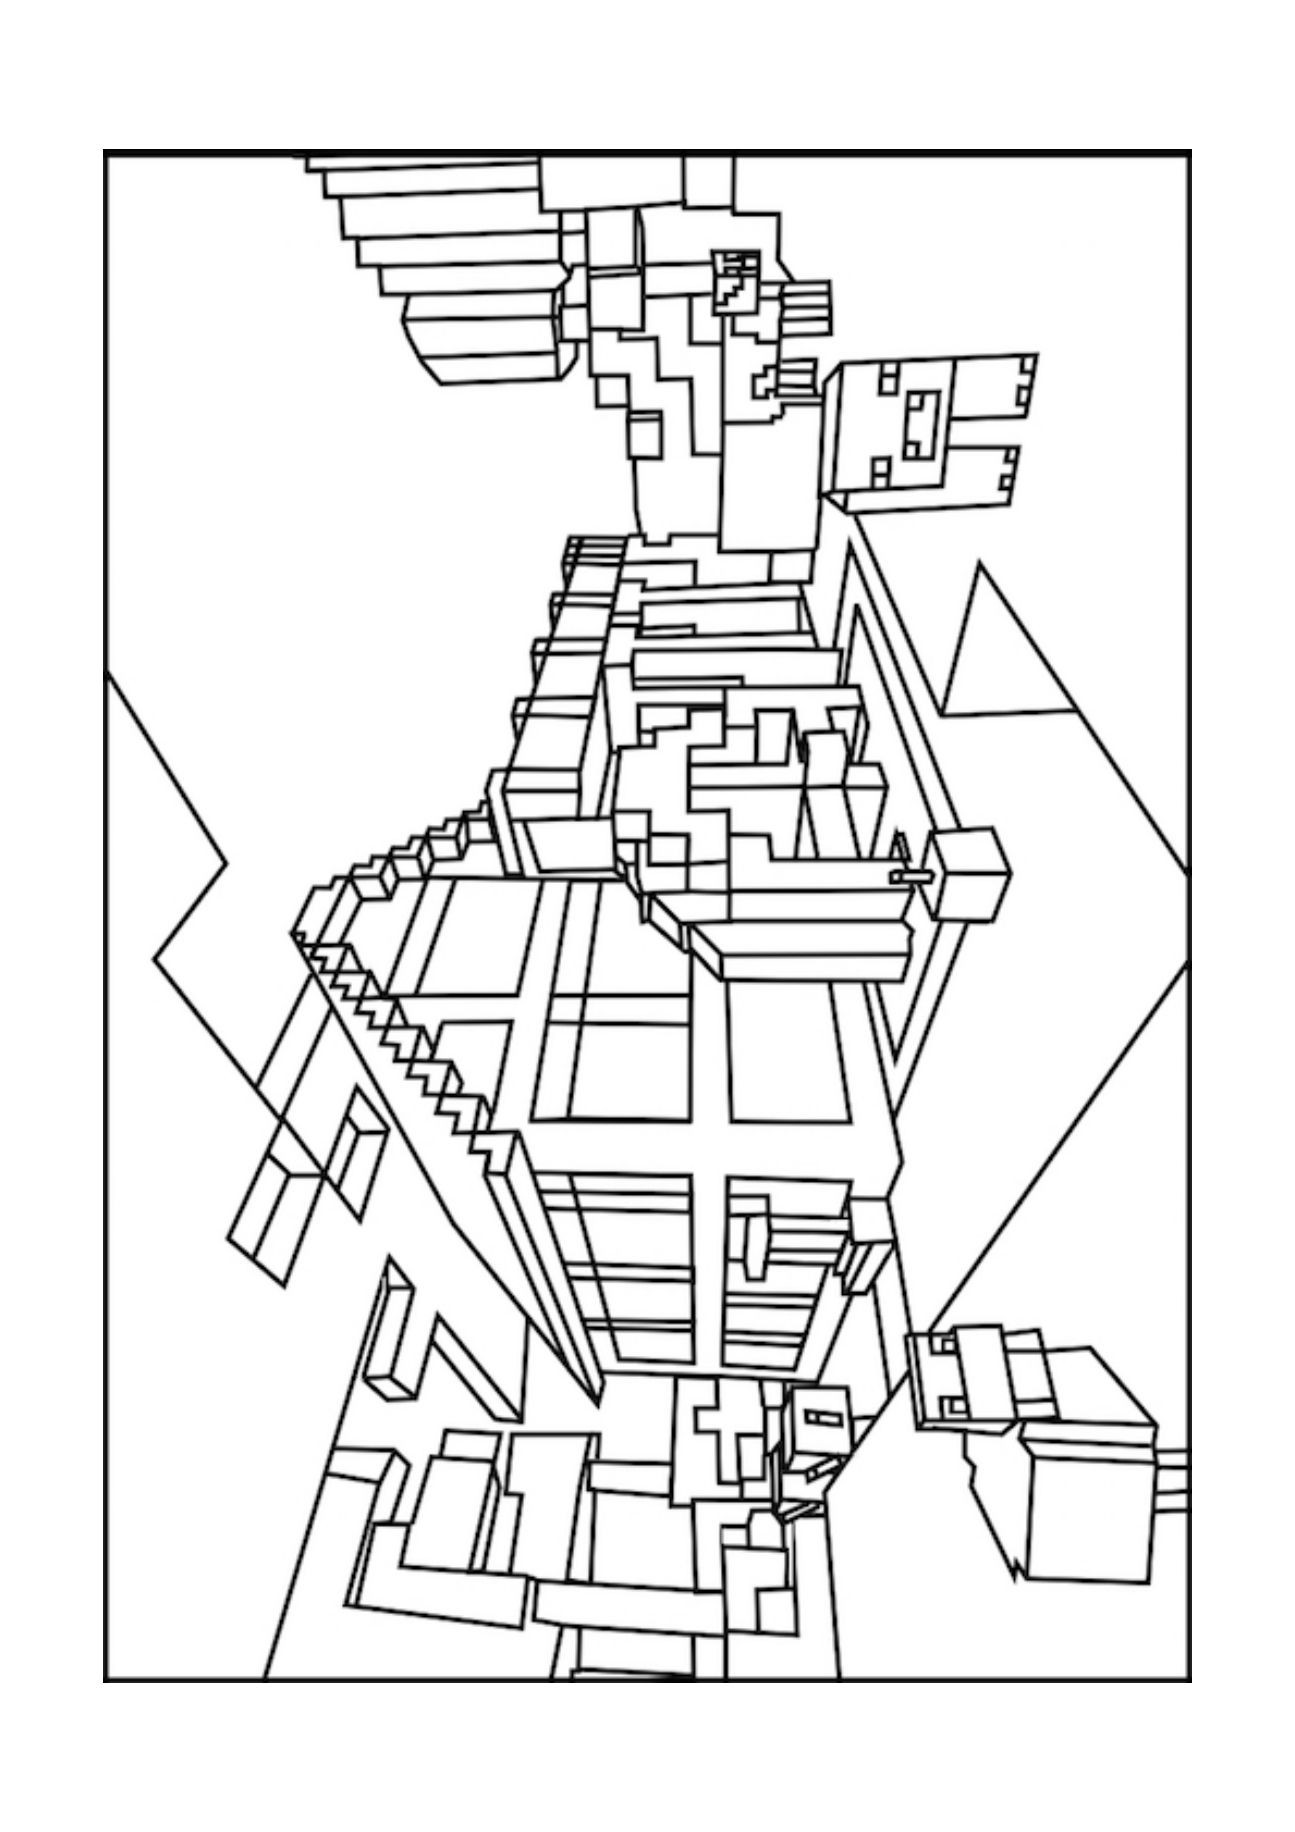 mindcraft coloring sheets minecraft mobs a minecraft coloring page for kids mindcraft sheets coloring